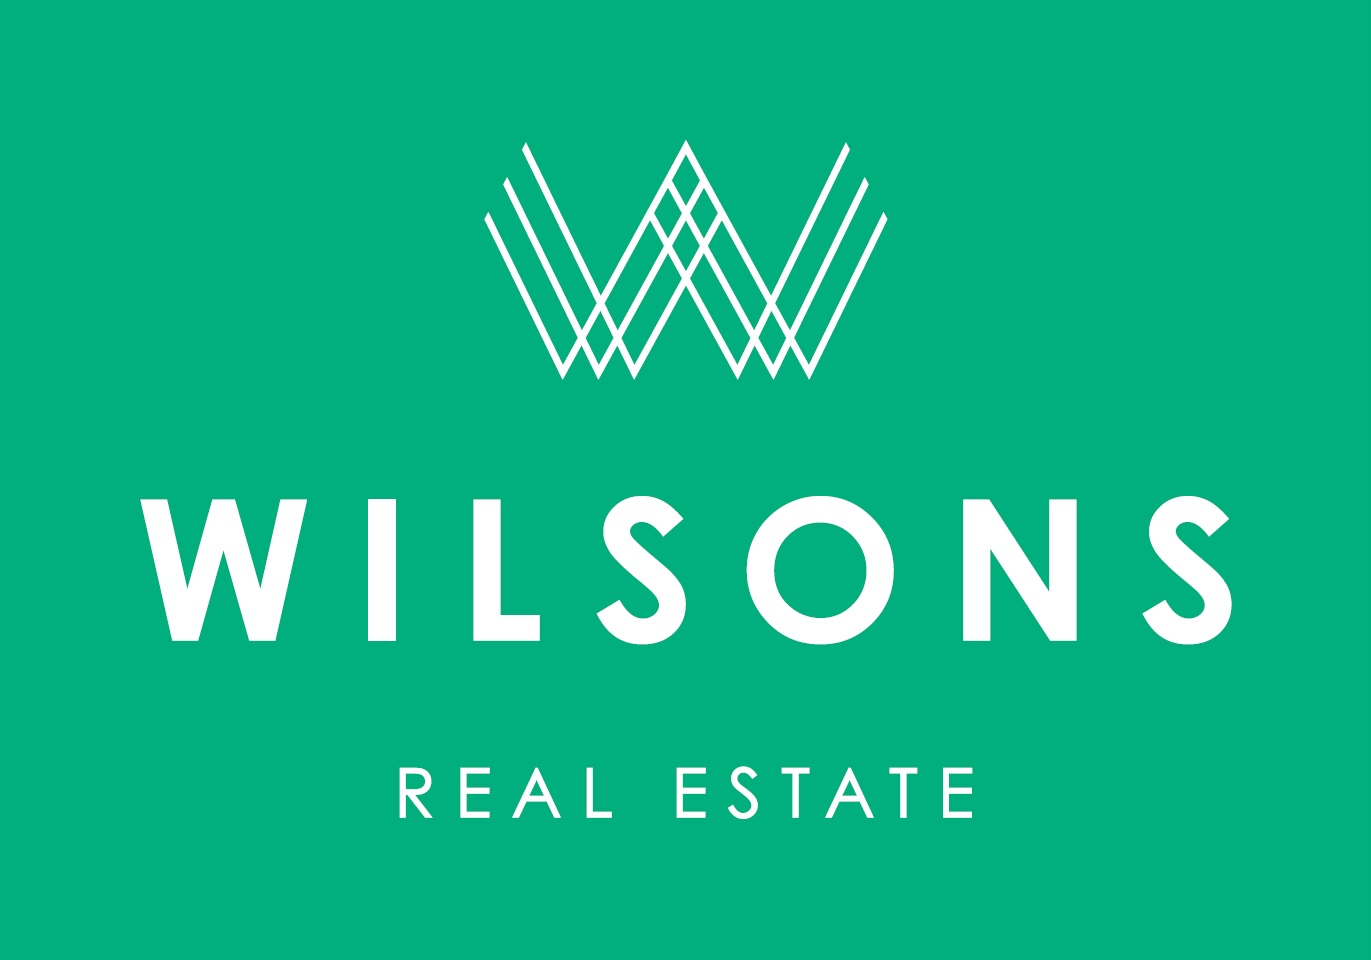 Wilsons Real Estate (Geelong)